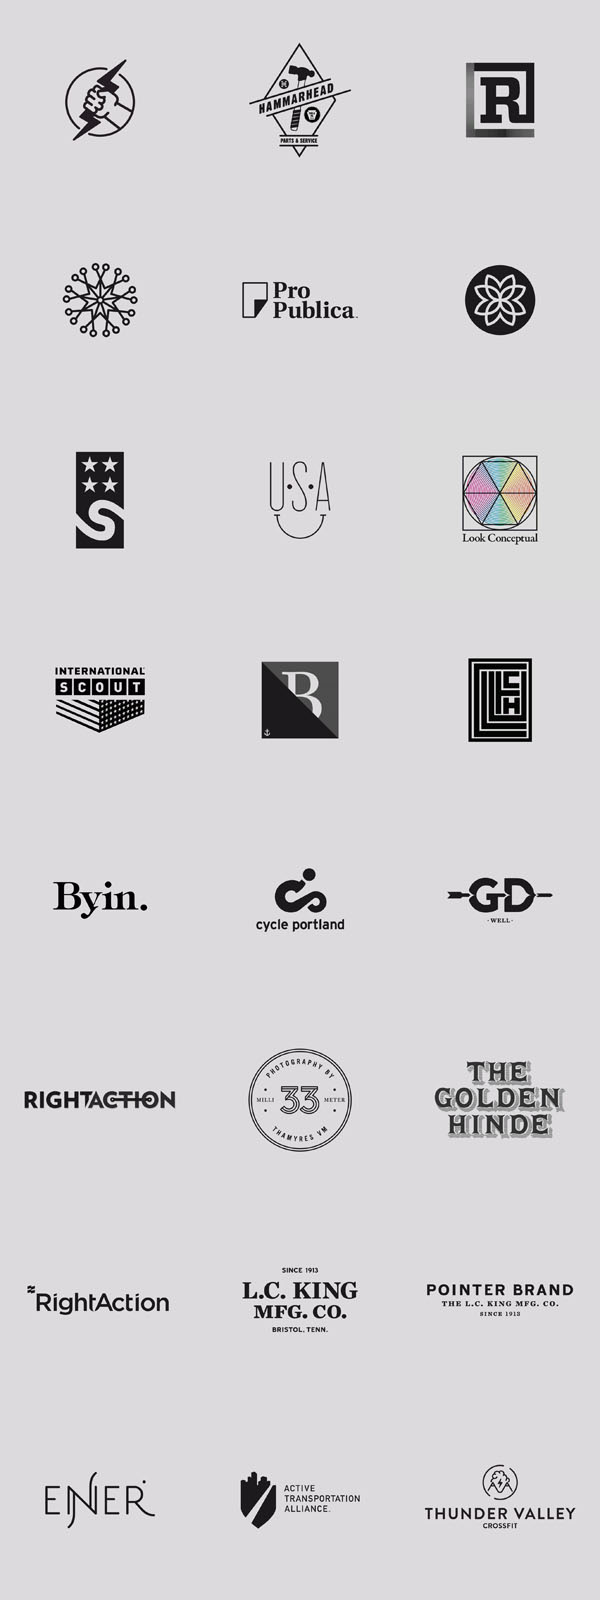 Logo Design Inspiration - Graphic Design by Daniel Blackman